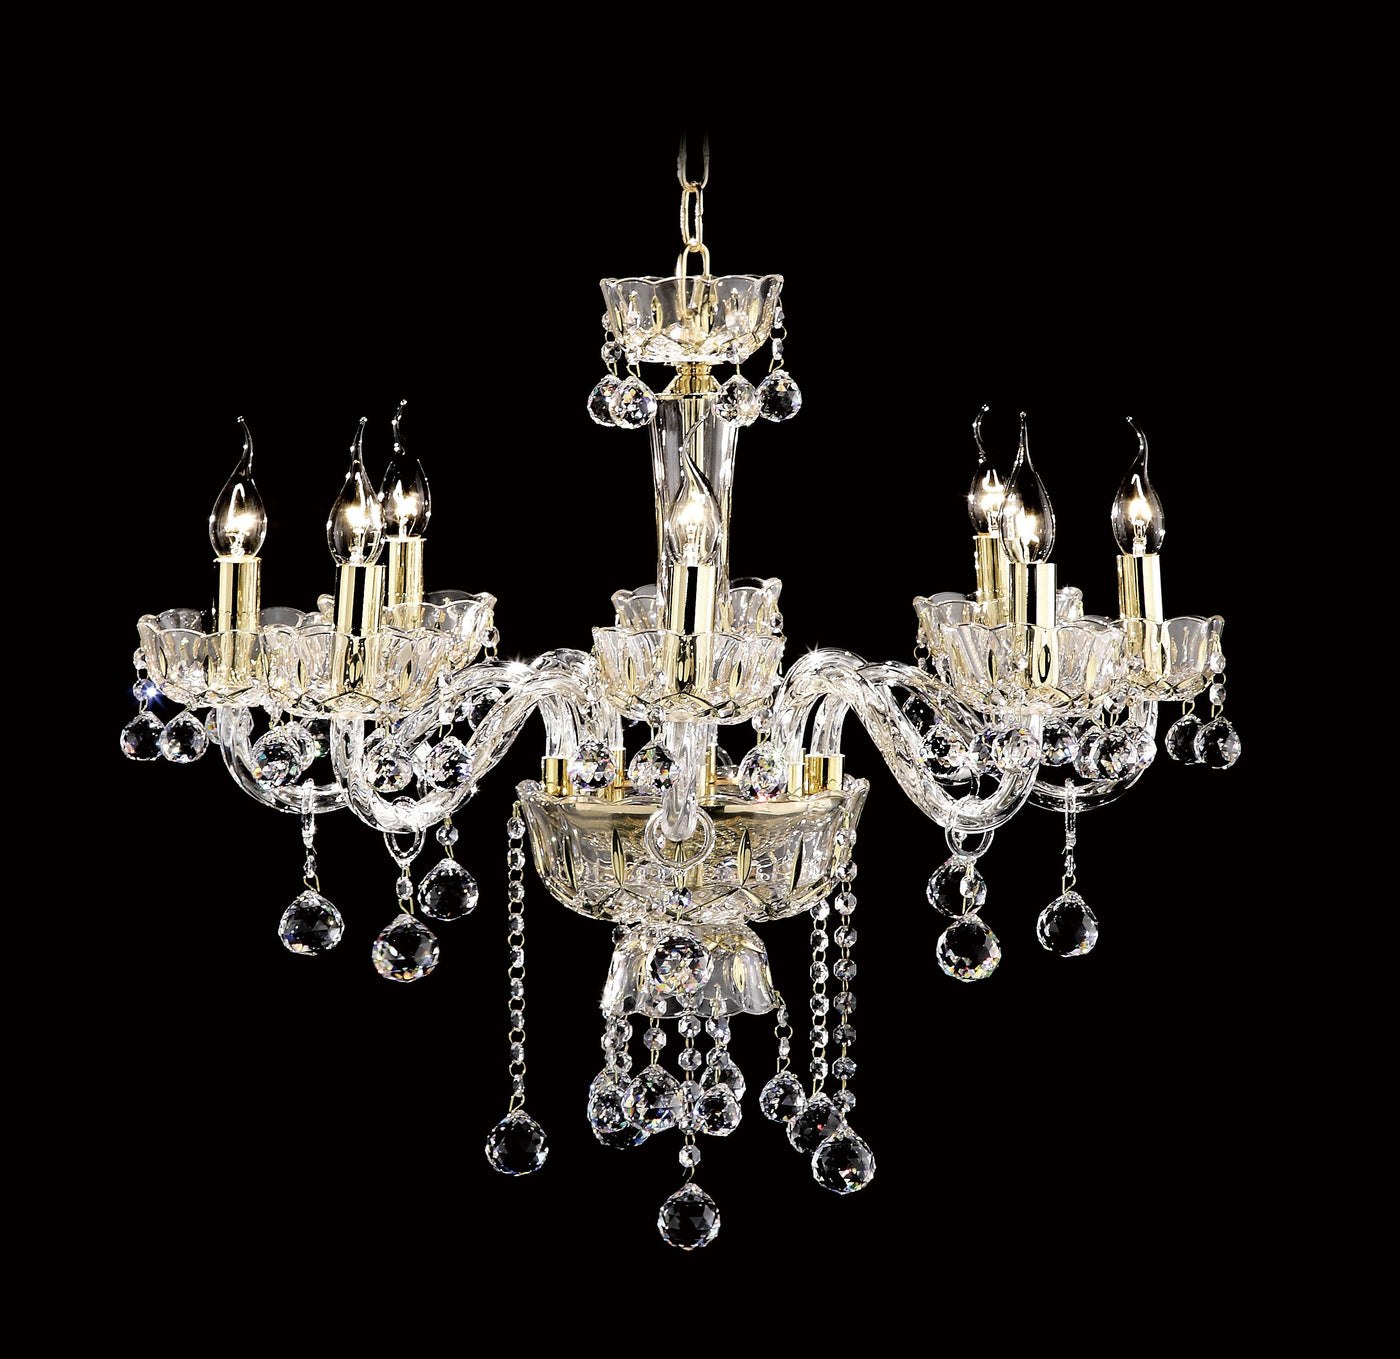 7723 crystal pendant light 30 8 light asfour crystal chandelier 7723 crystal pendant light 30 8 light asfour crystal chandelier 7723 30 8l 702 aloadofball